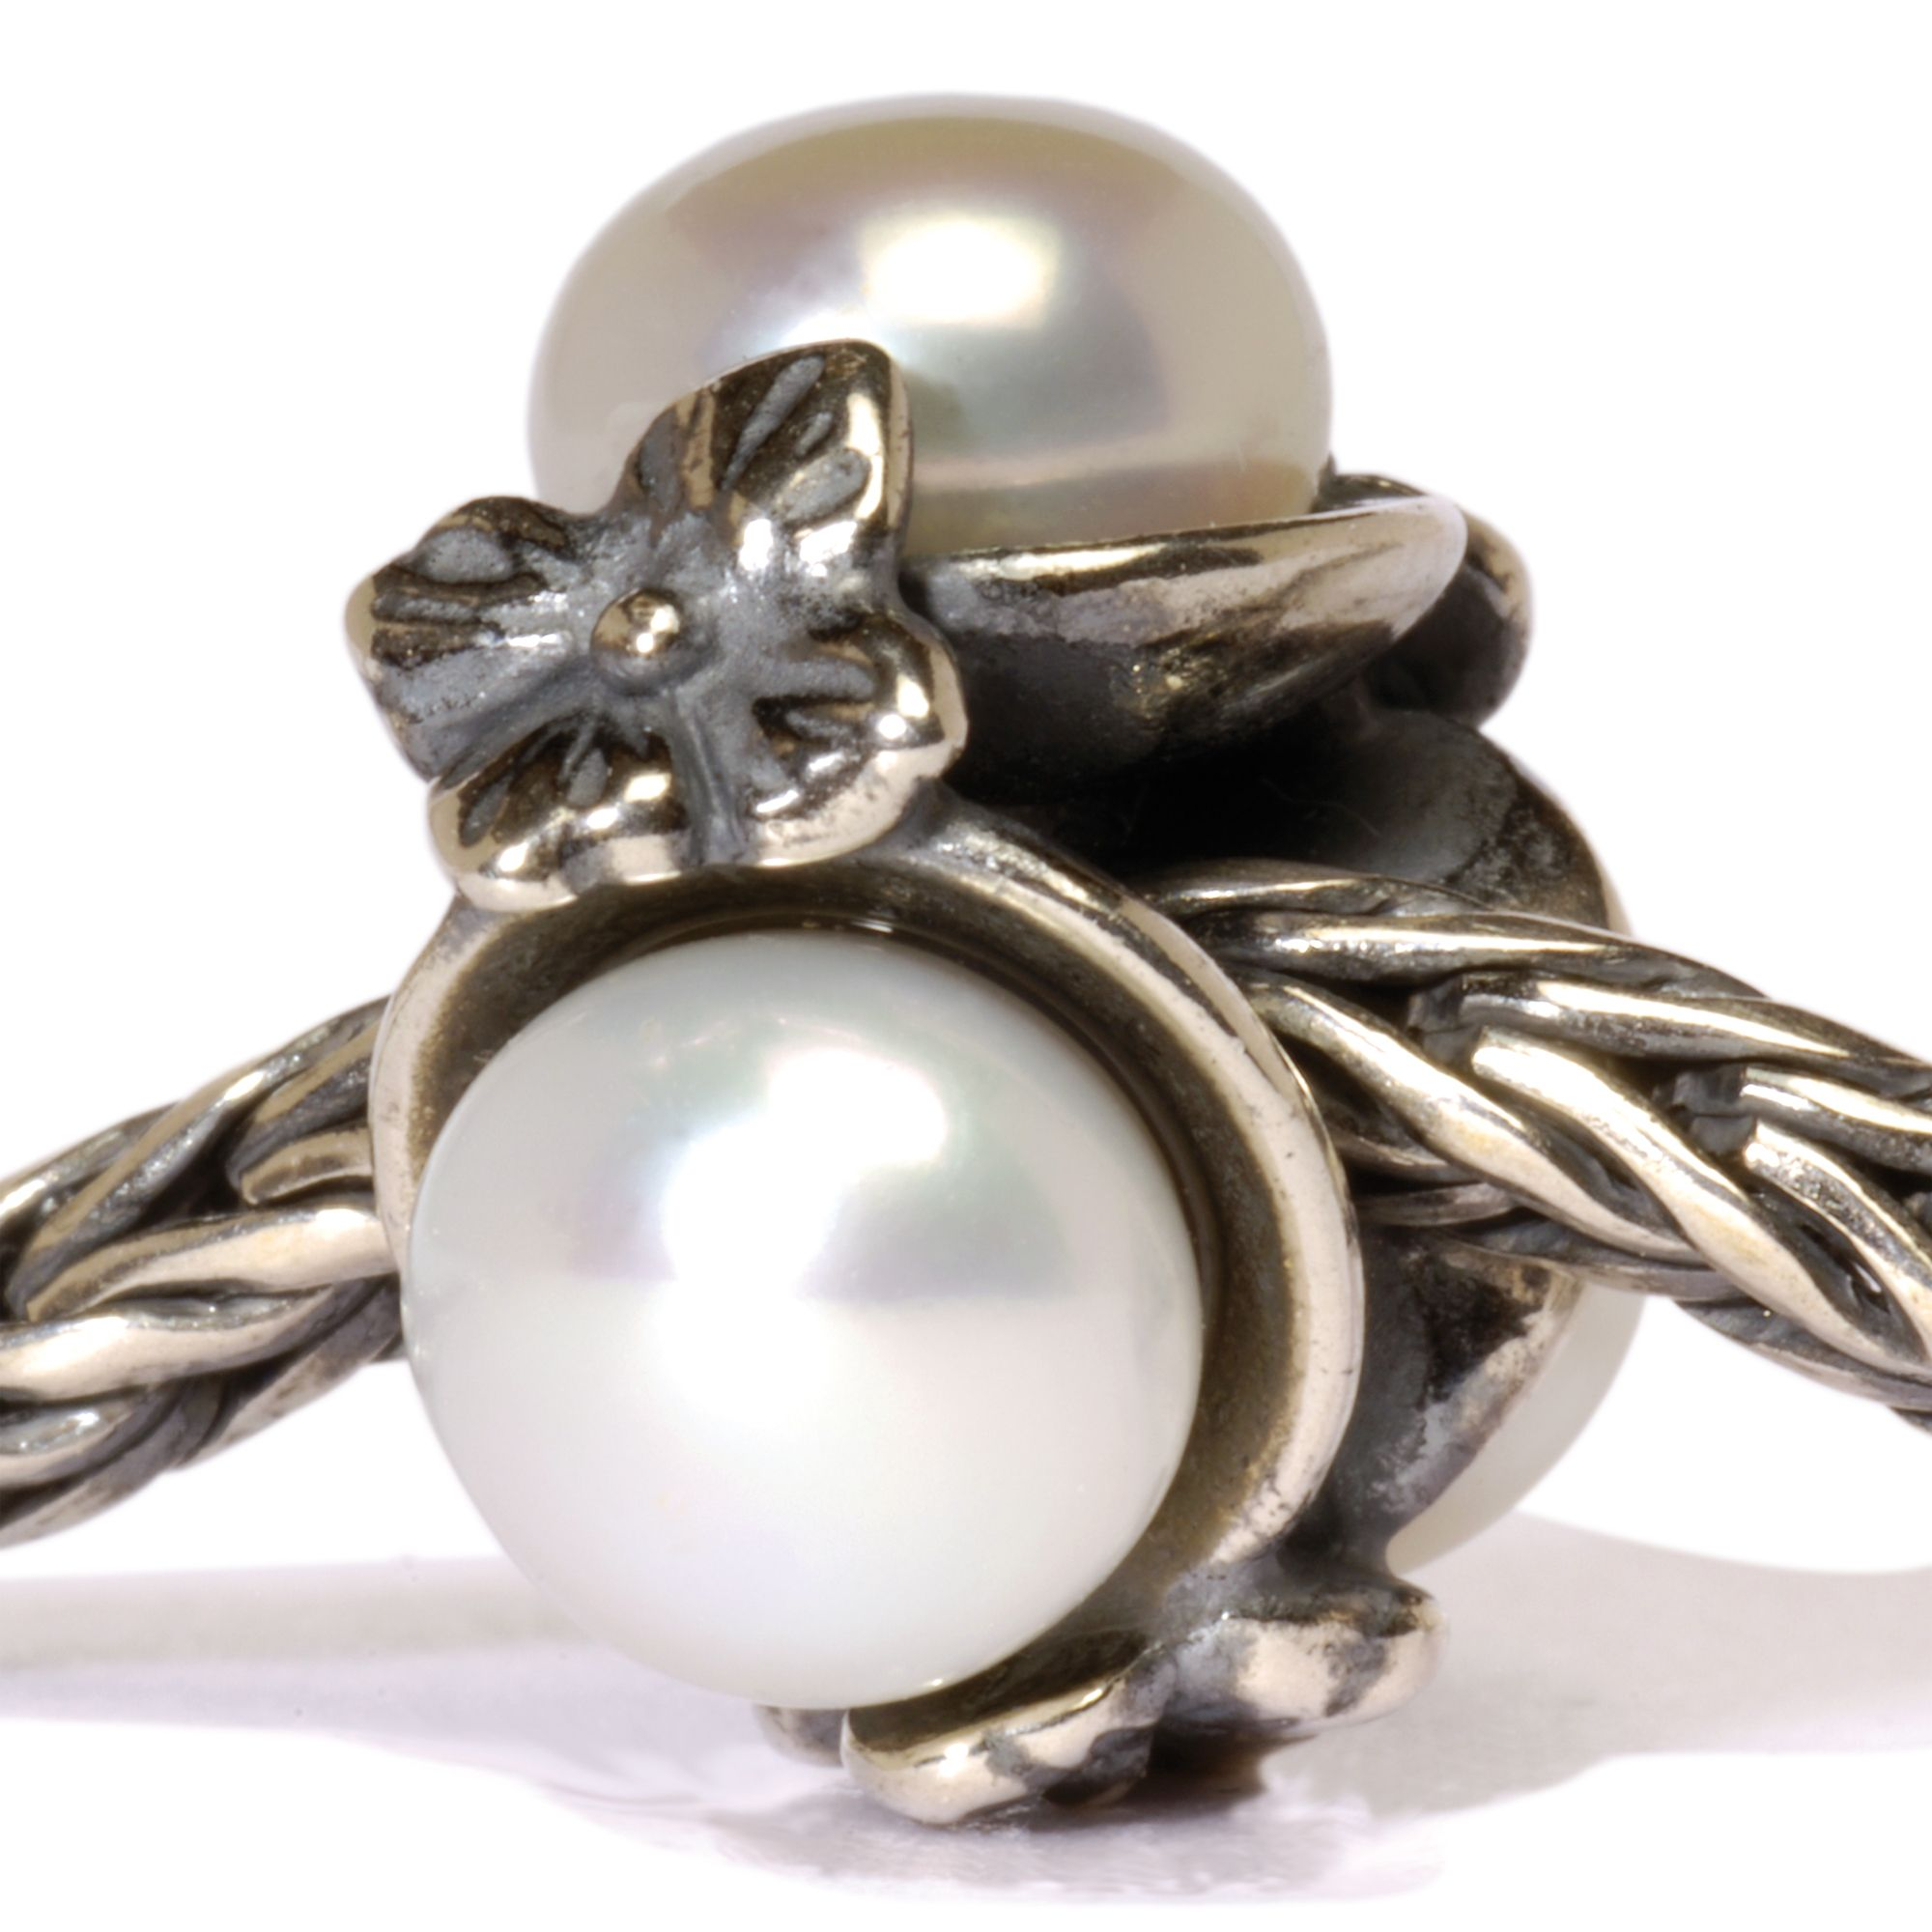 Triple Pearl silver and stone charm bead